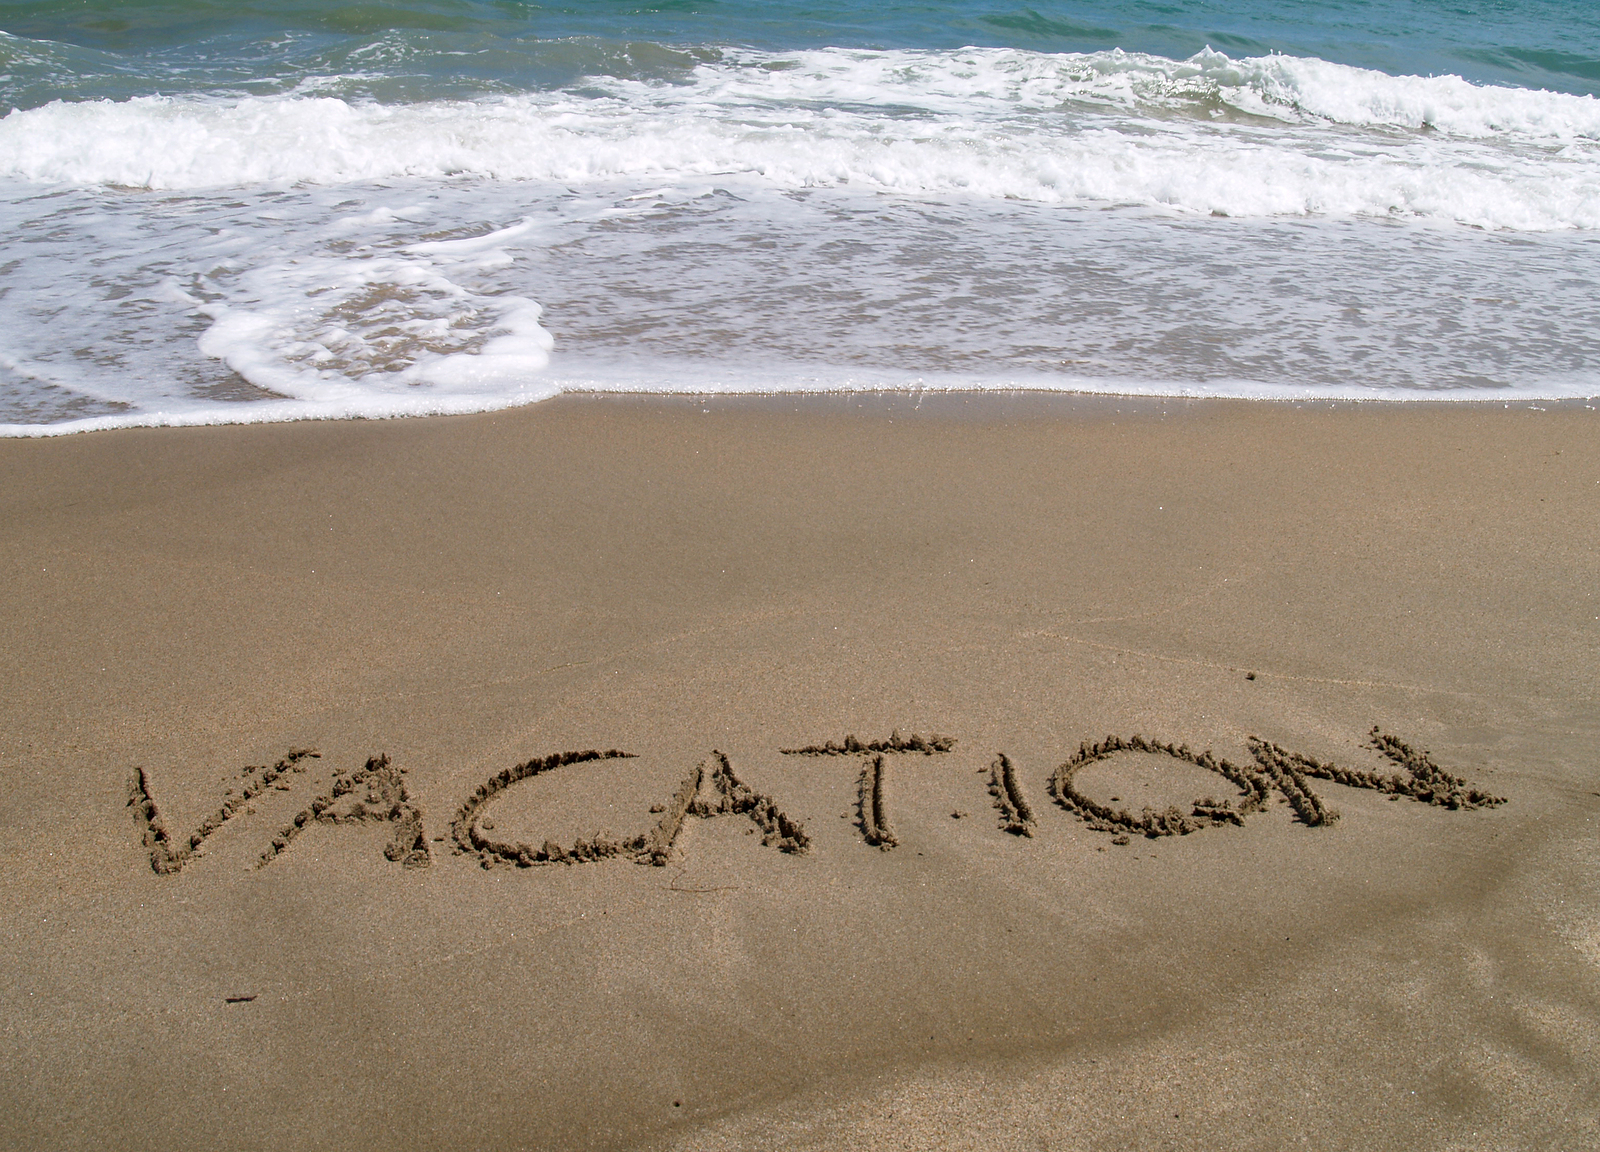 Working at taking a vacation | Our Weekly | Black News and ...